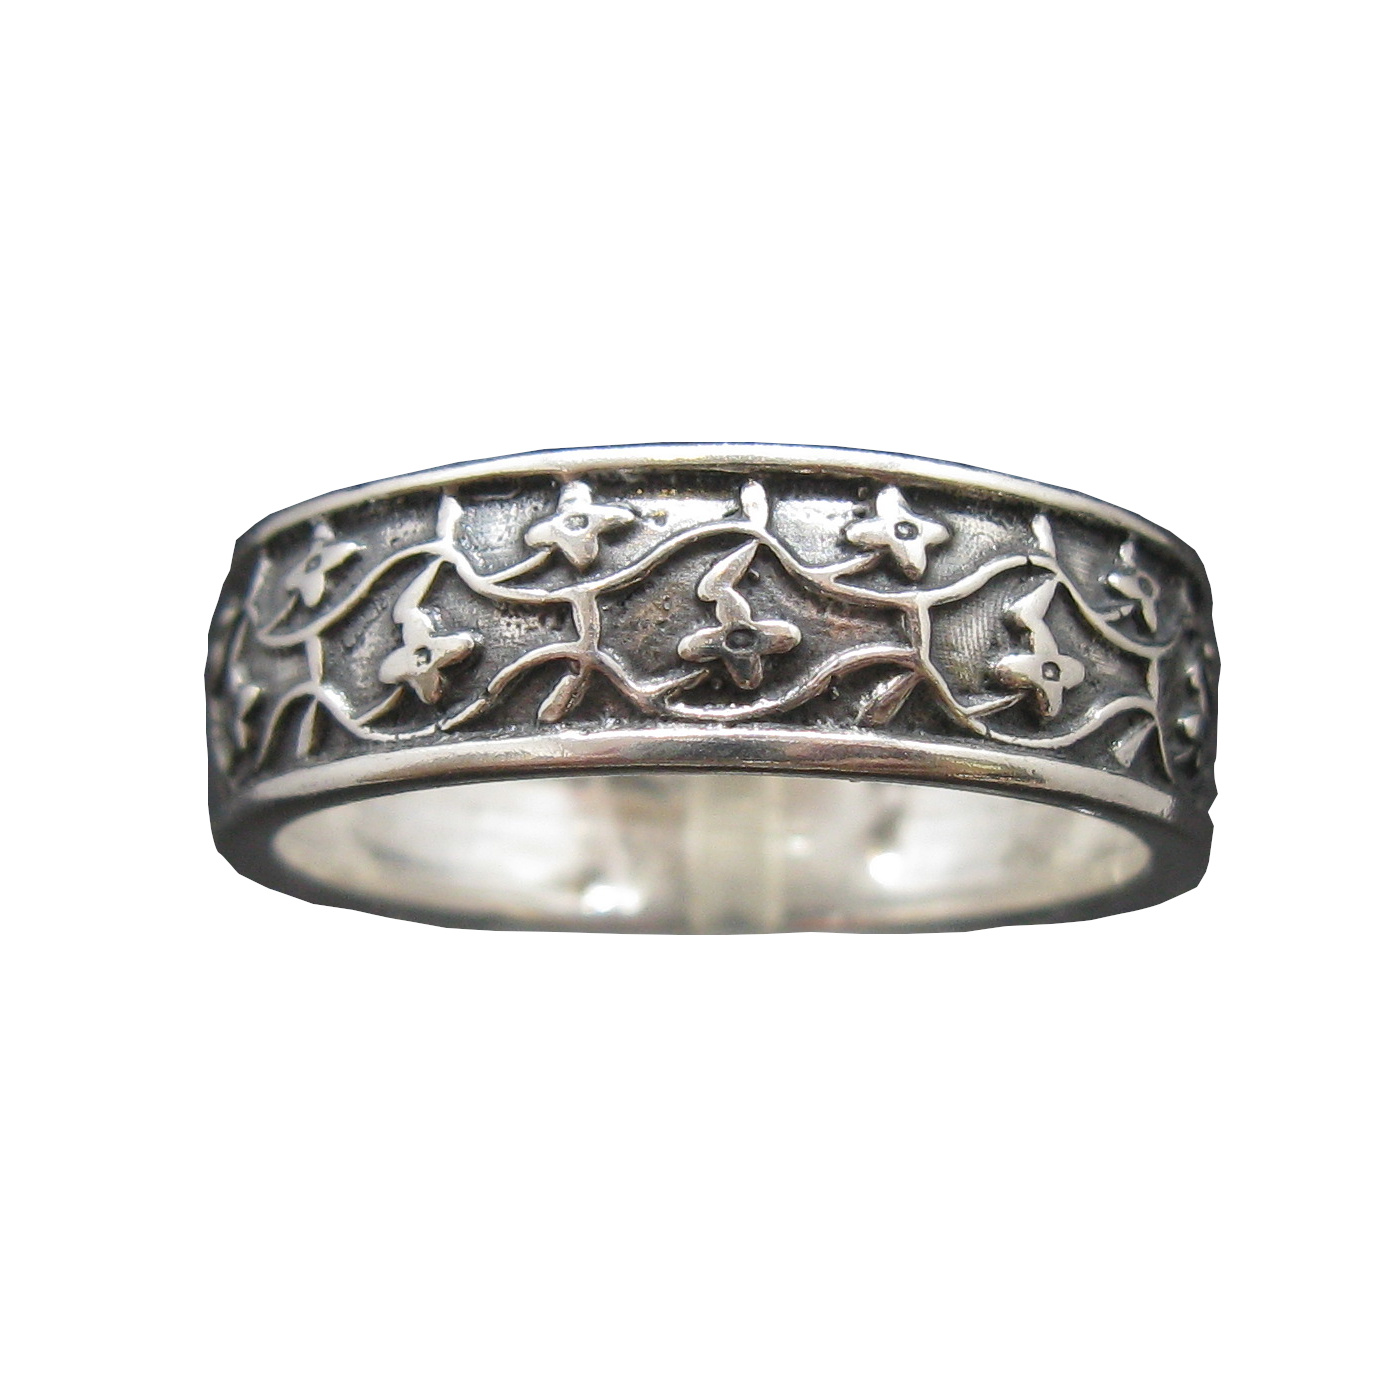 Silver ring - R002035